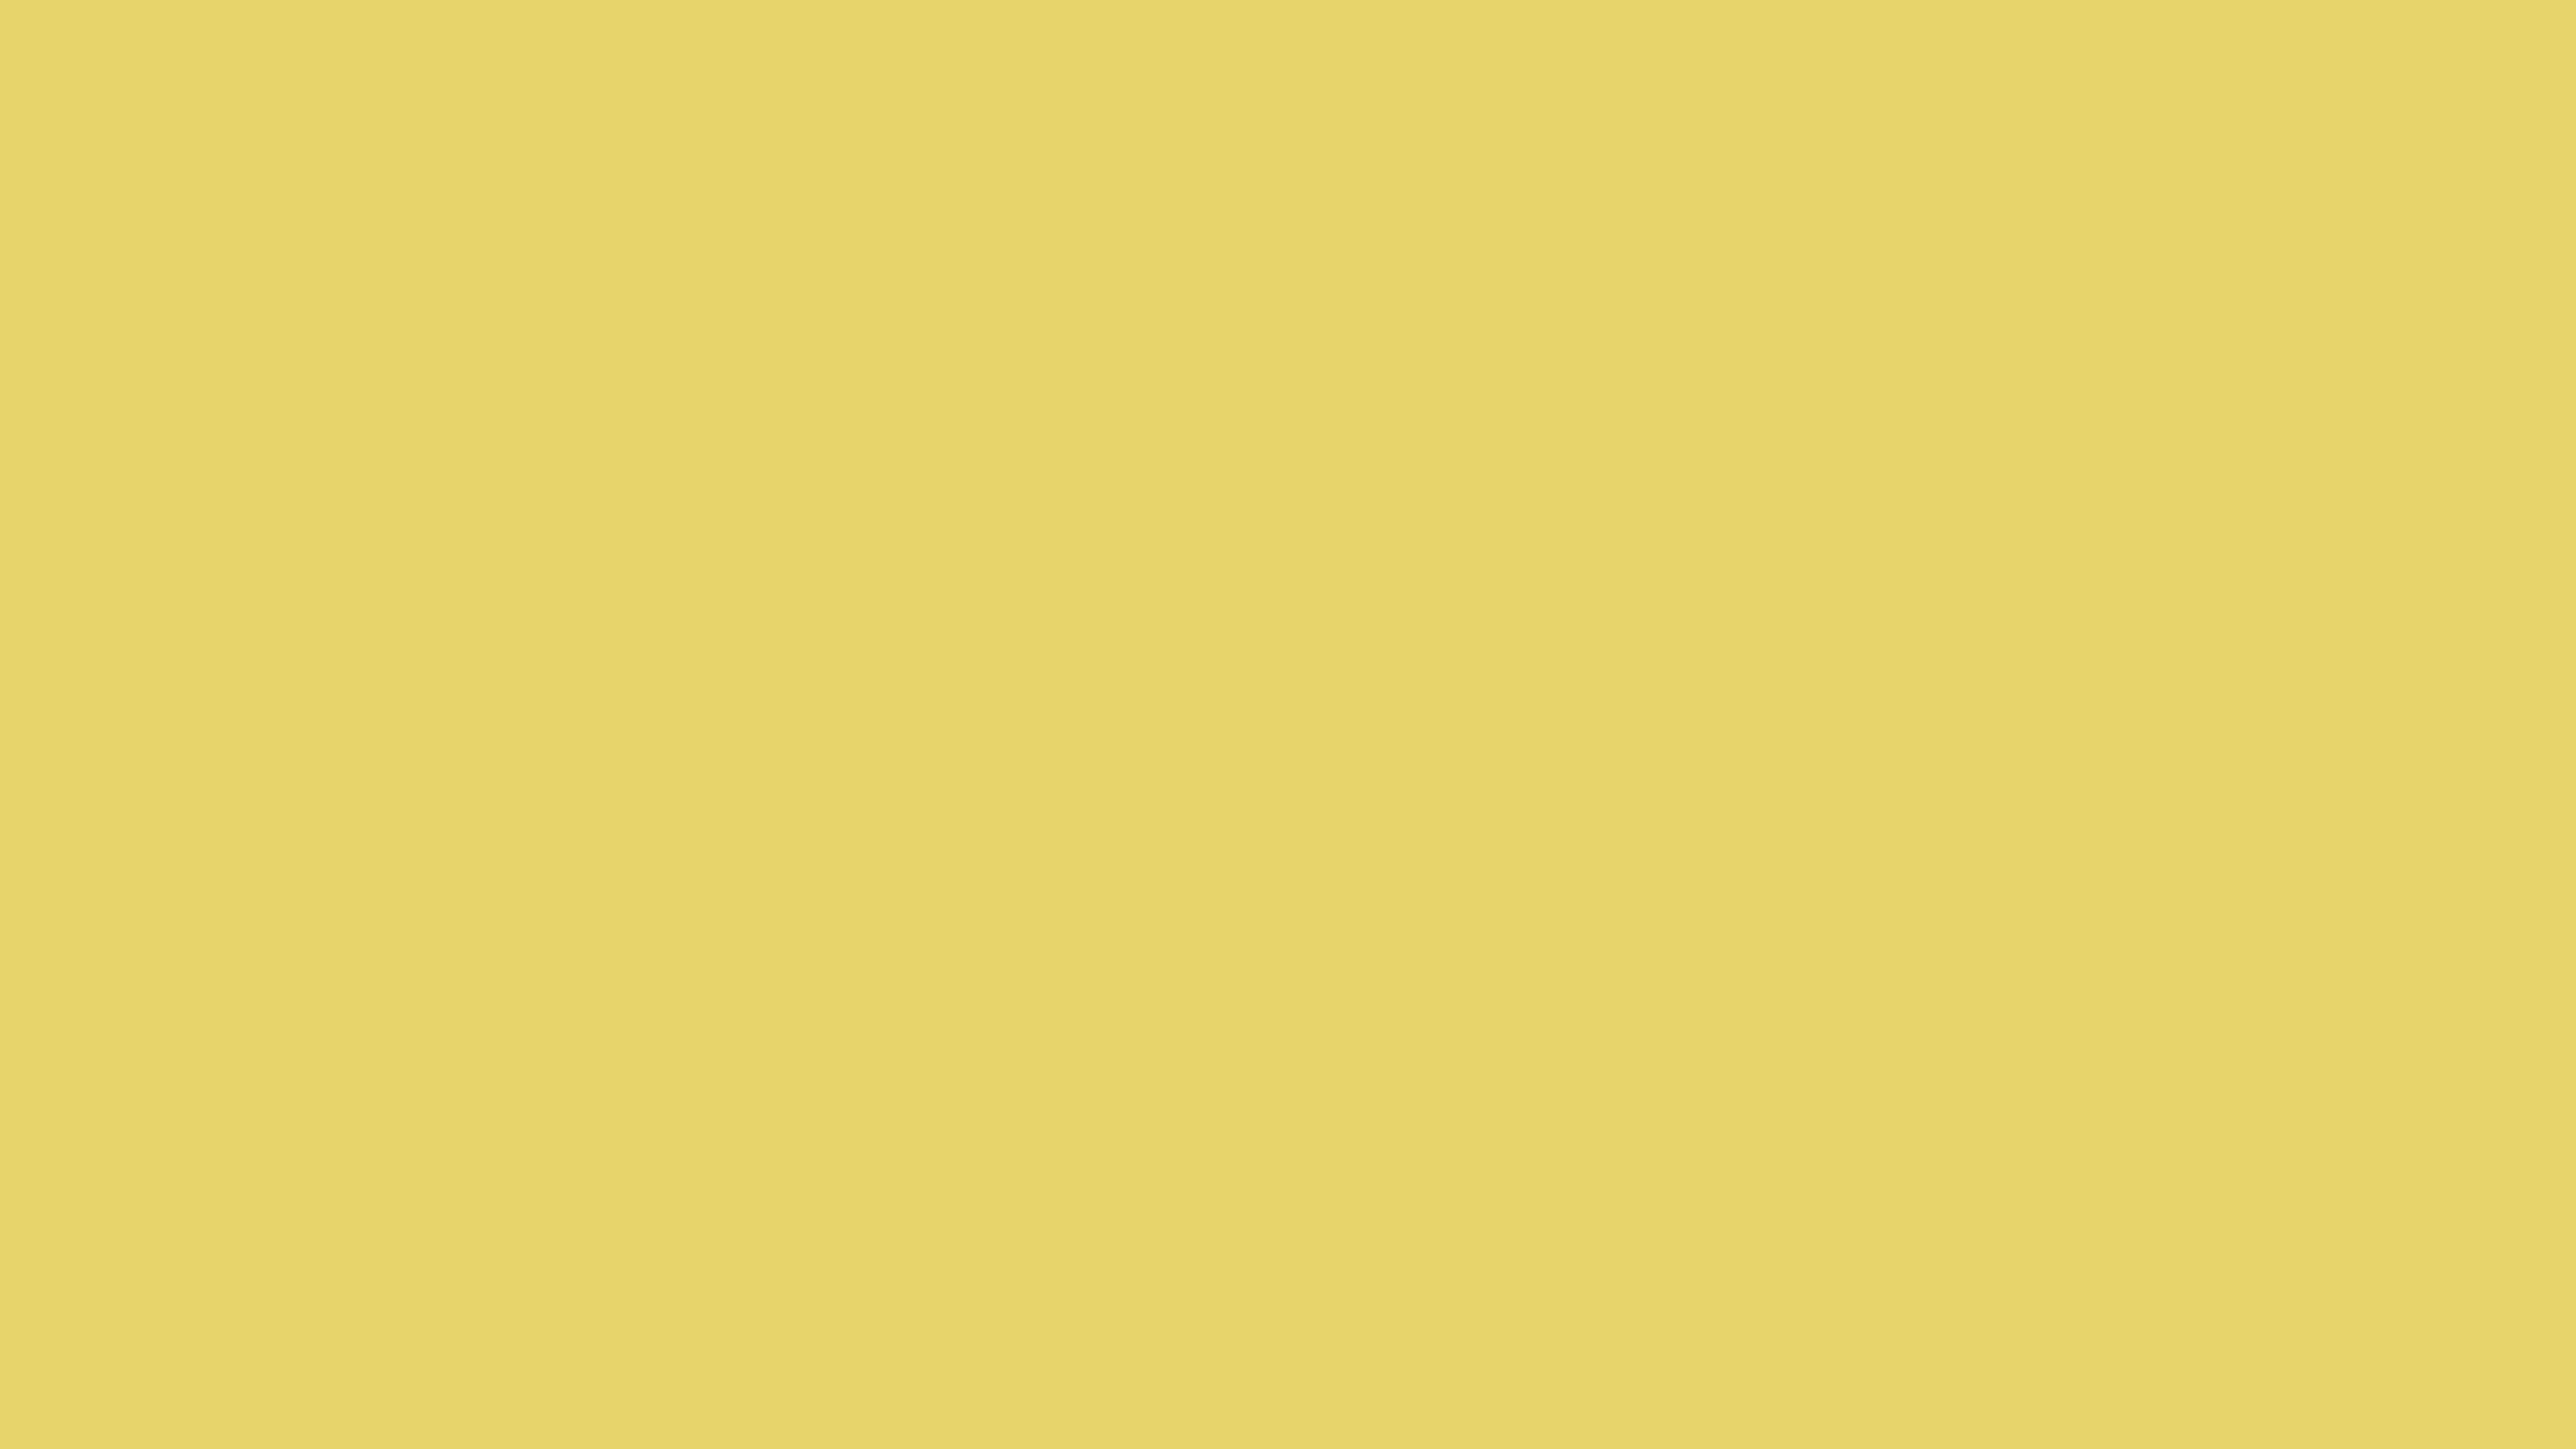 7680x4320 Hansa Yellow Solid Color Background